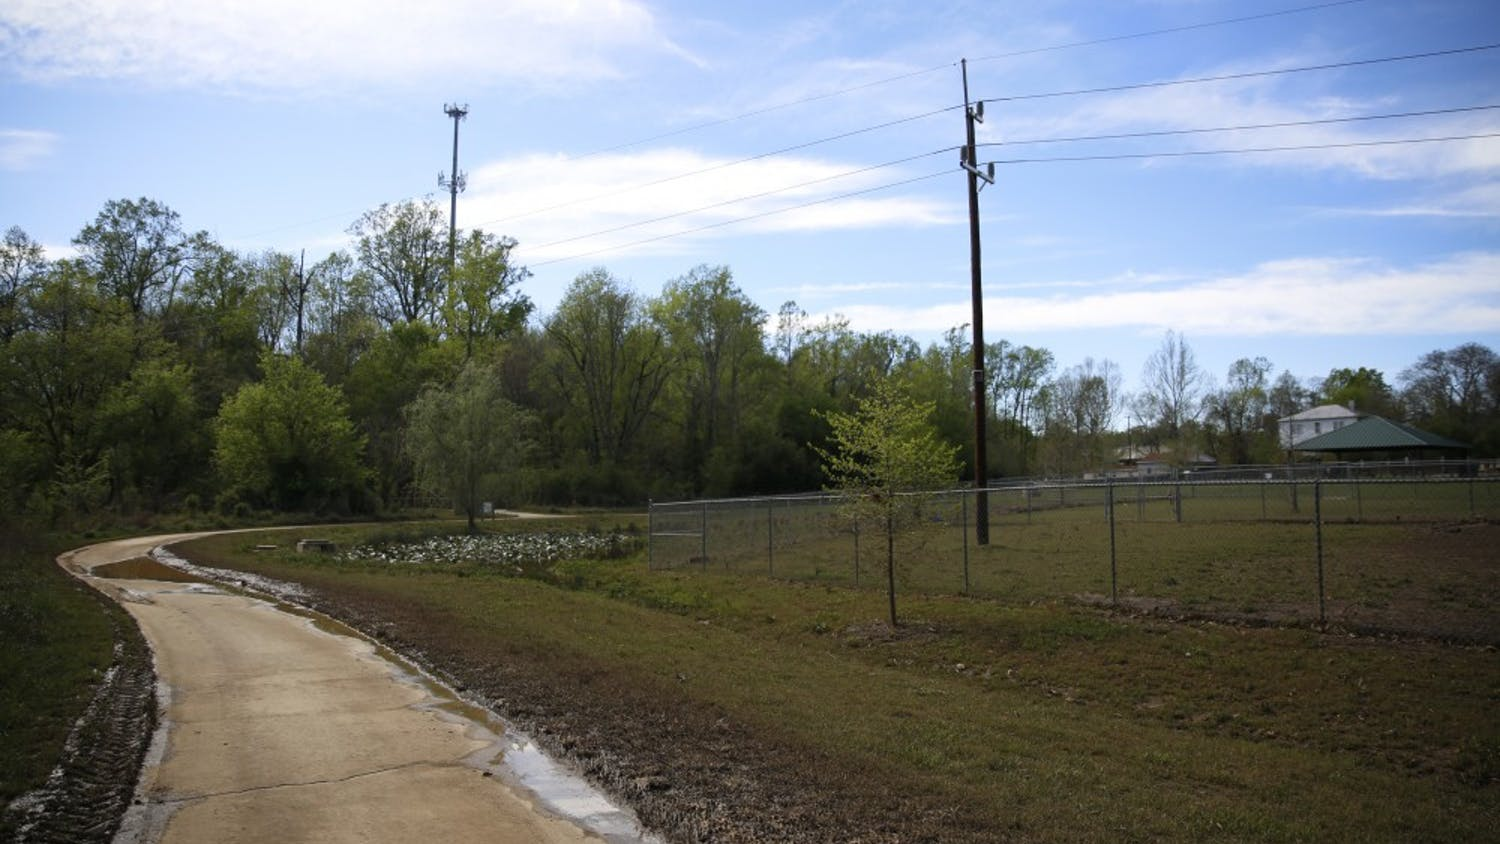 Gold Park in Hillsborough suffered severe flooding from the recent thunderstorms. Hillsborough Public Works cleaned the park, which has been reopened.